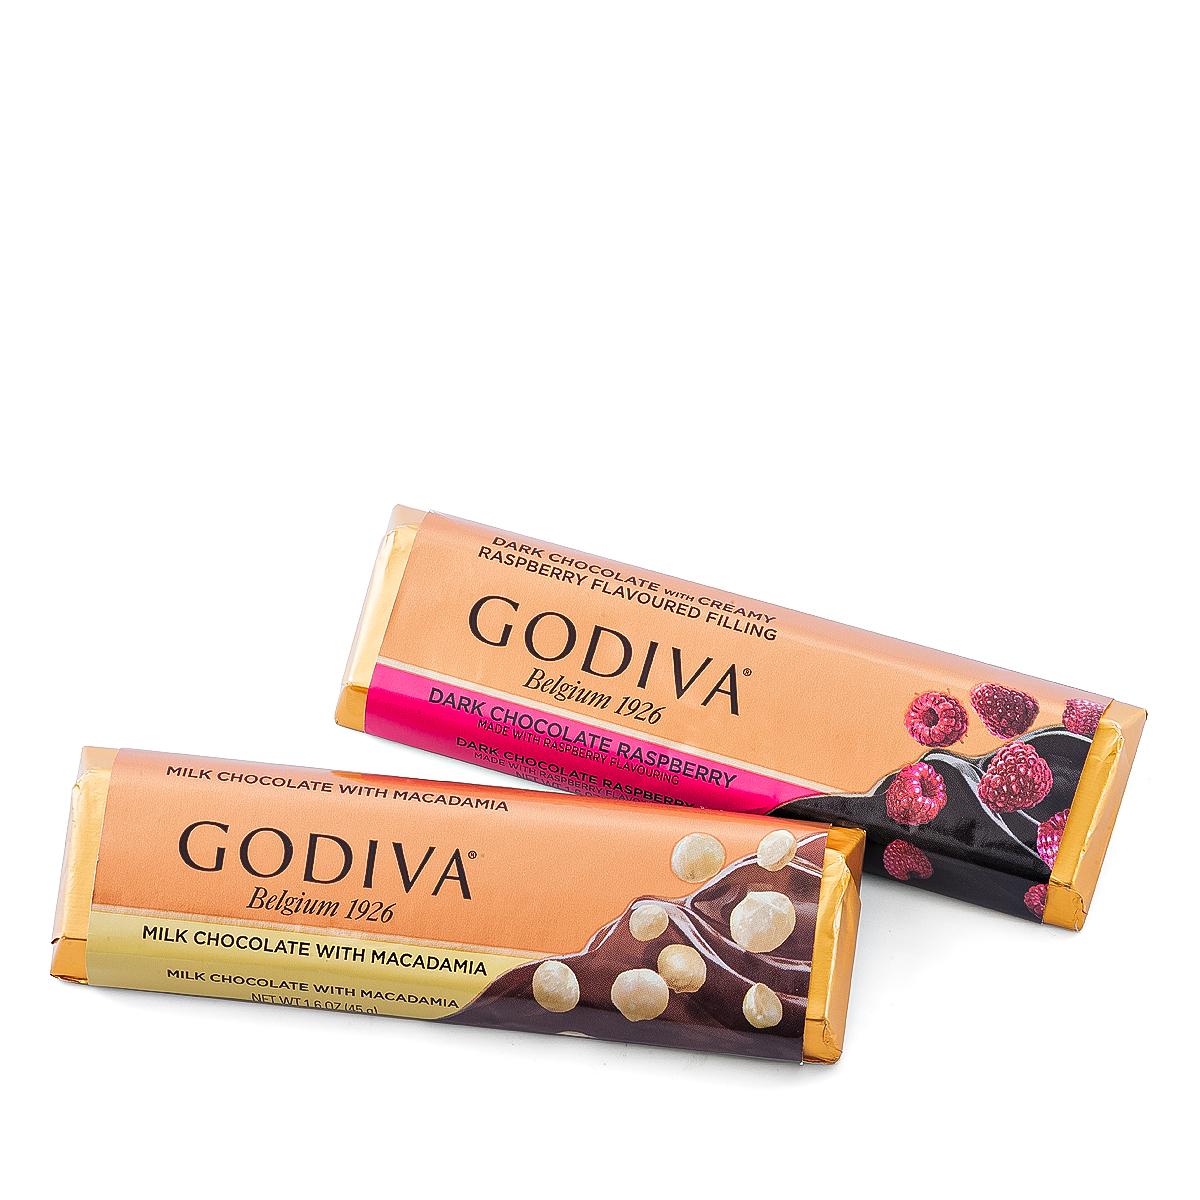 Indulge their sweet tooth with Godiva milk chocolate and salted caramel bar, dark chocolate covered almonds, a Godiva solid milk chocolate and dark chocolate bar, chocolate covered pretzels, Godiva signature biscuits, milk chocolate covered cashews, milk chocolate truffles, a milk chocolate and strawberry bar, a bag of dark French vanilla truffles, a bag of dark chocolate caramels and a bag of.